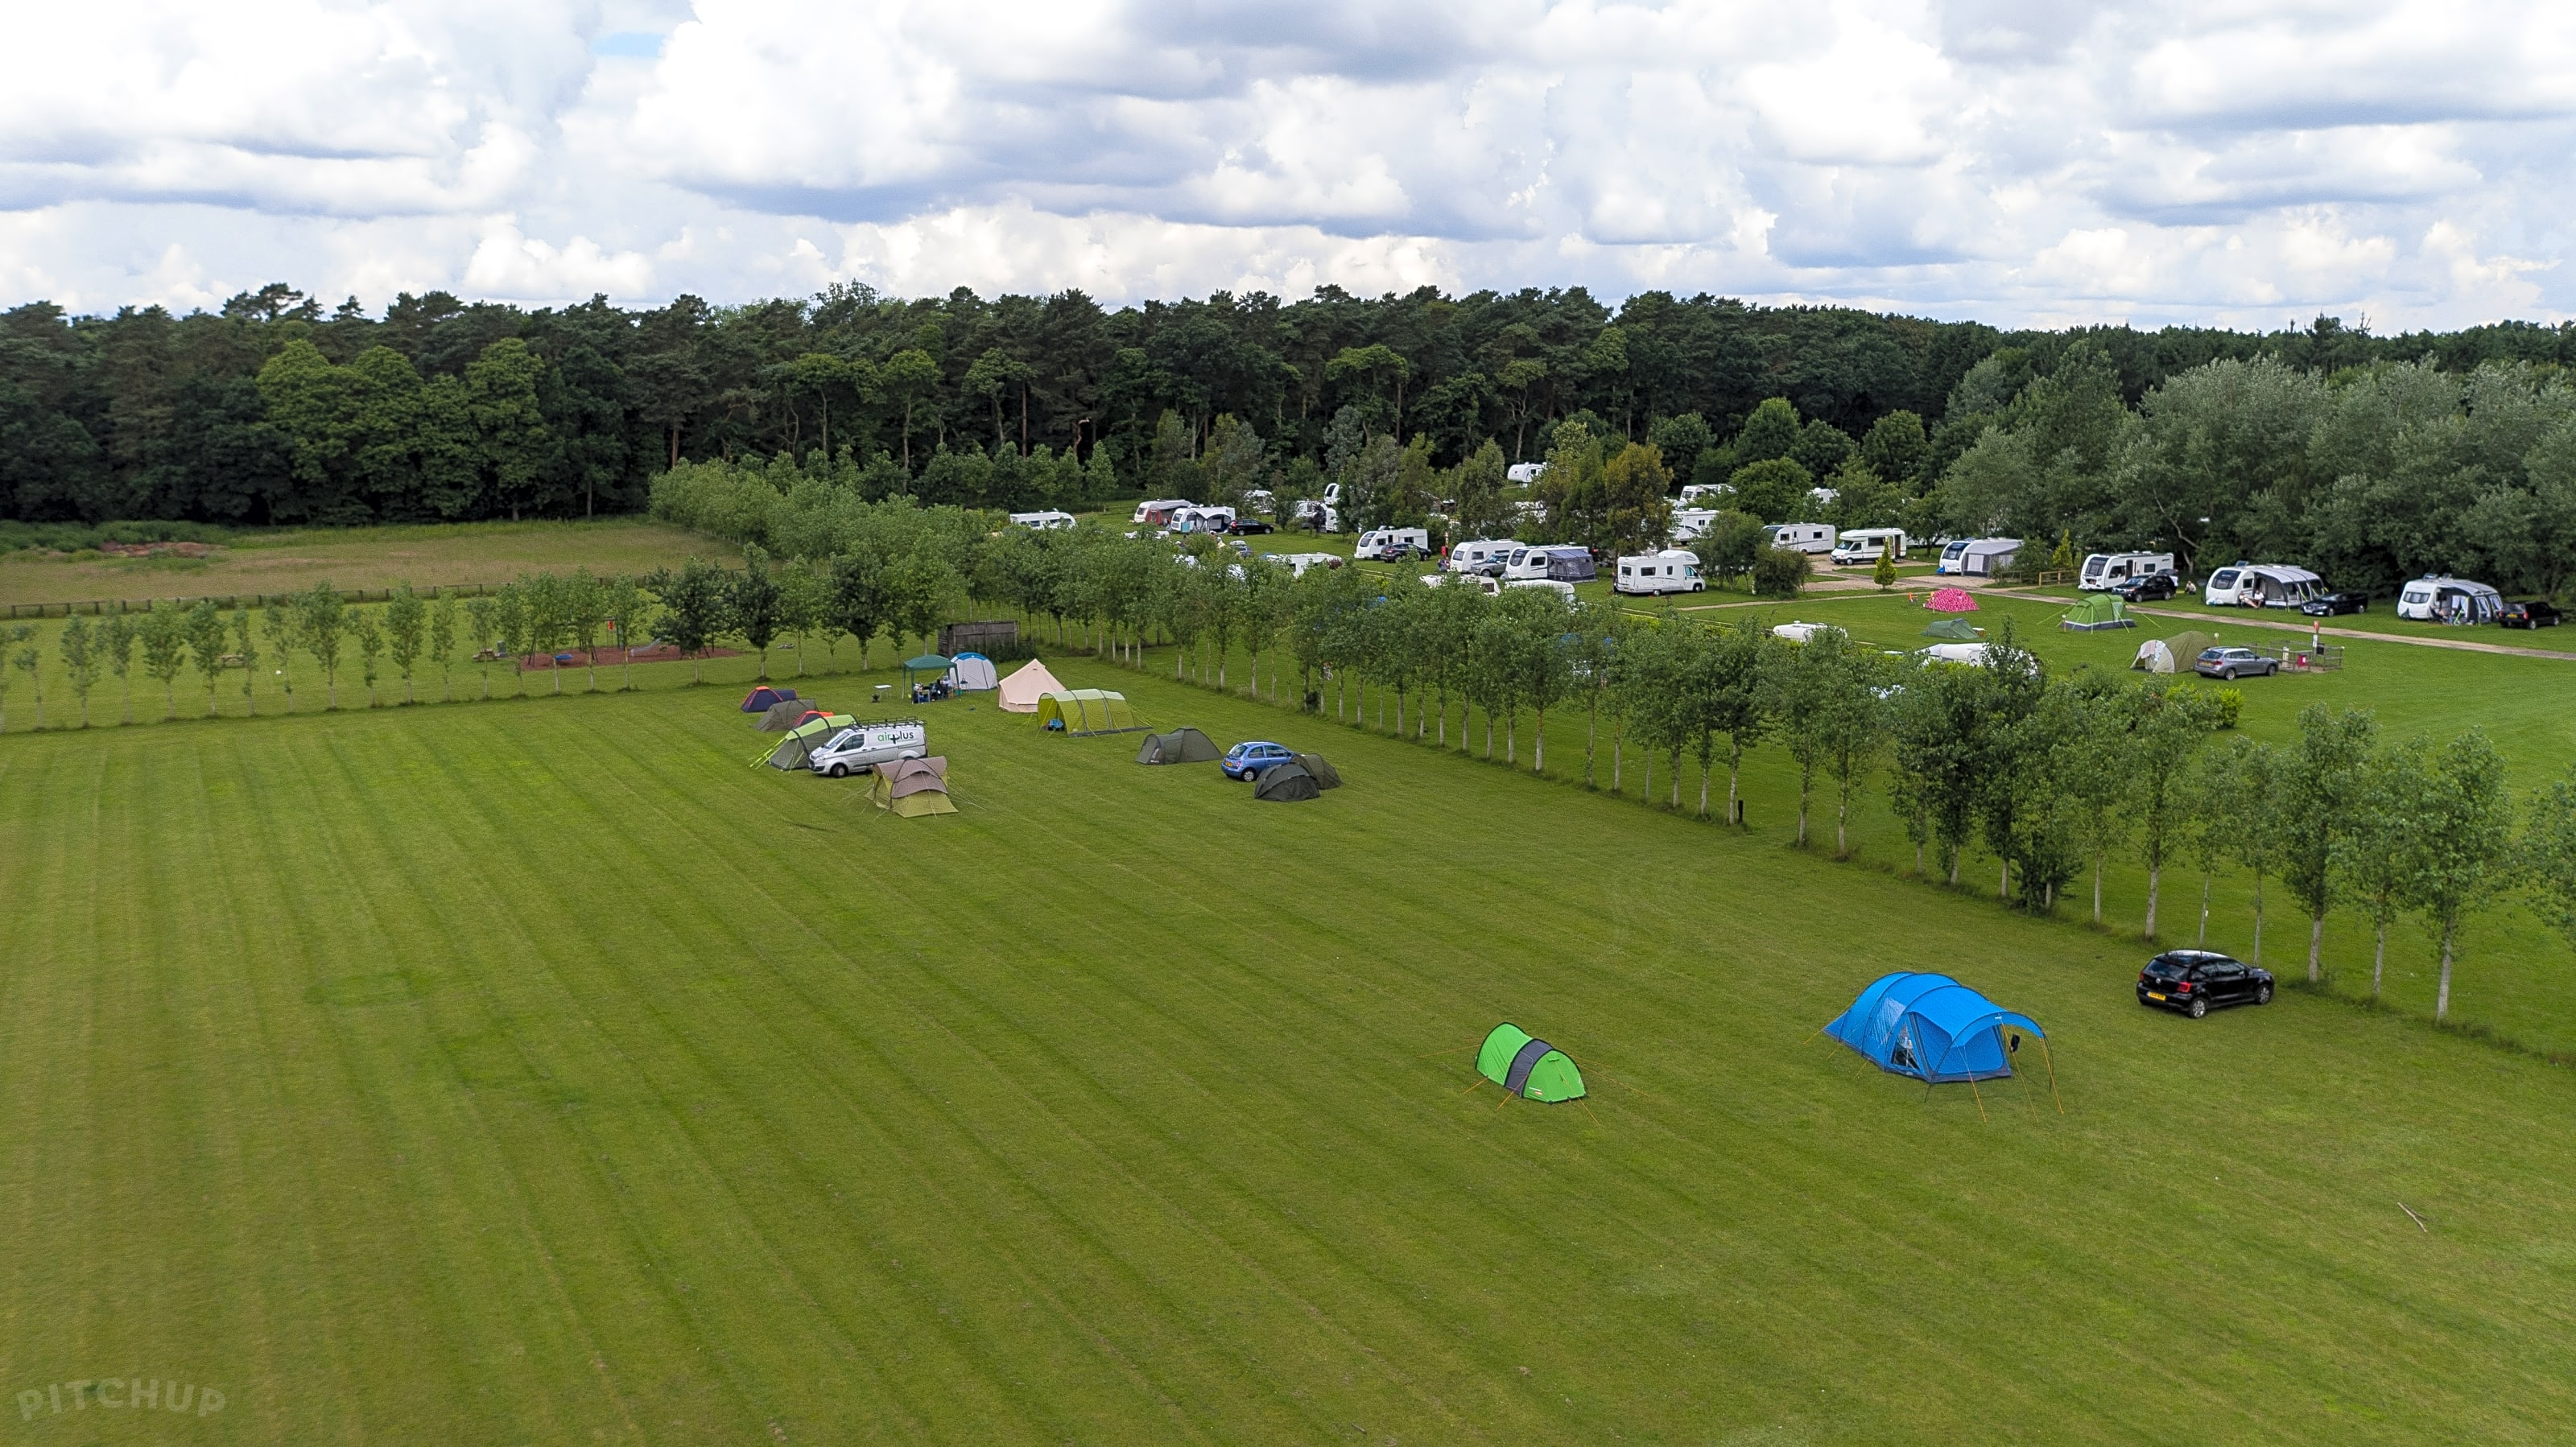 Puddledock Farm Caravan and Camping Site, Thetford - Updated